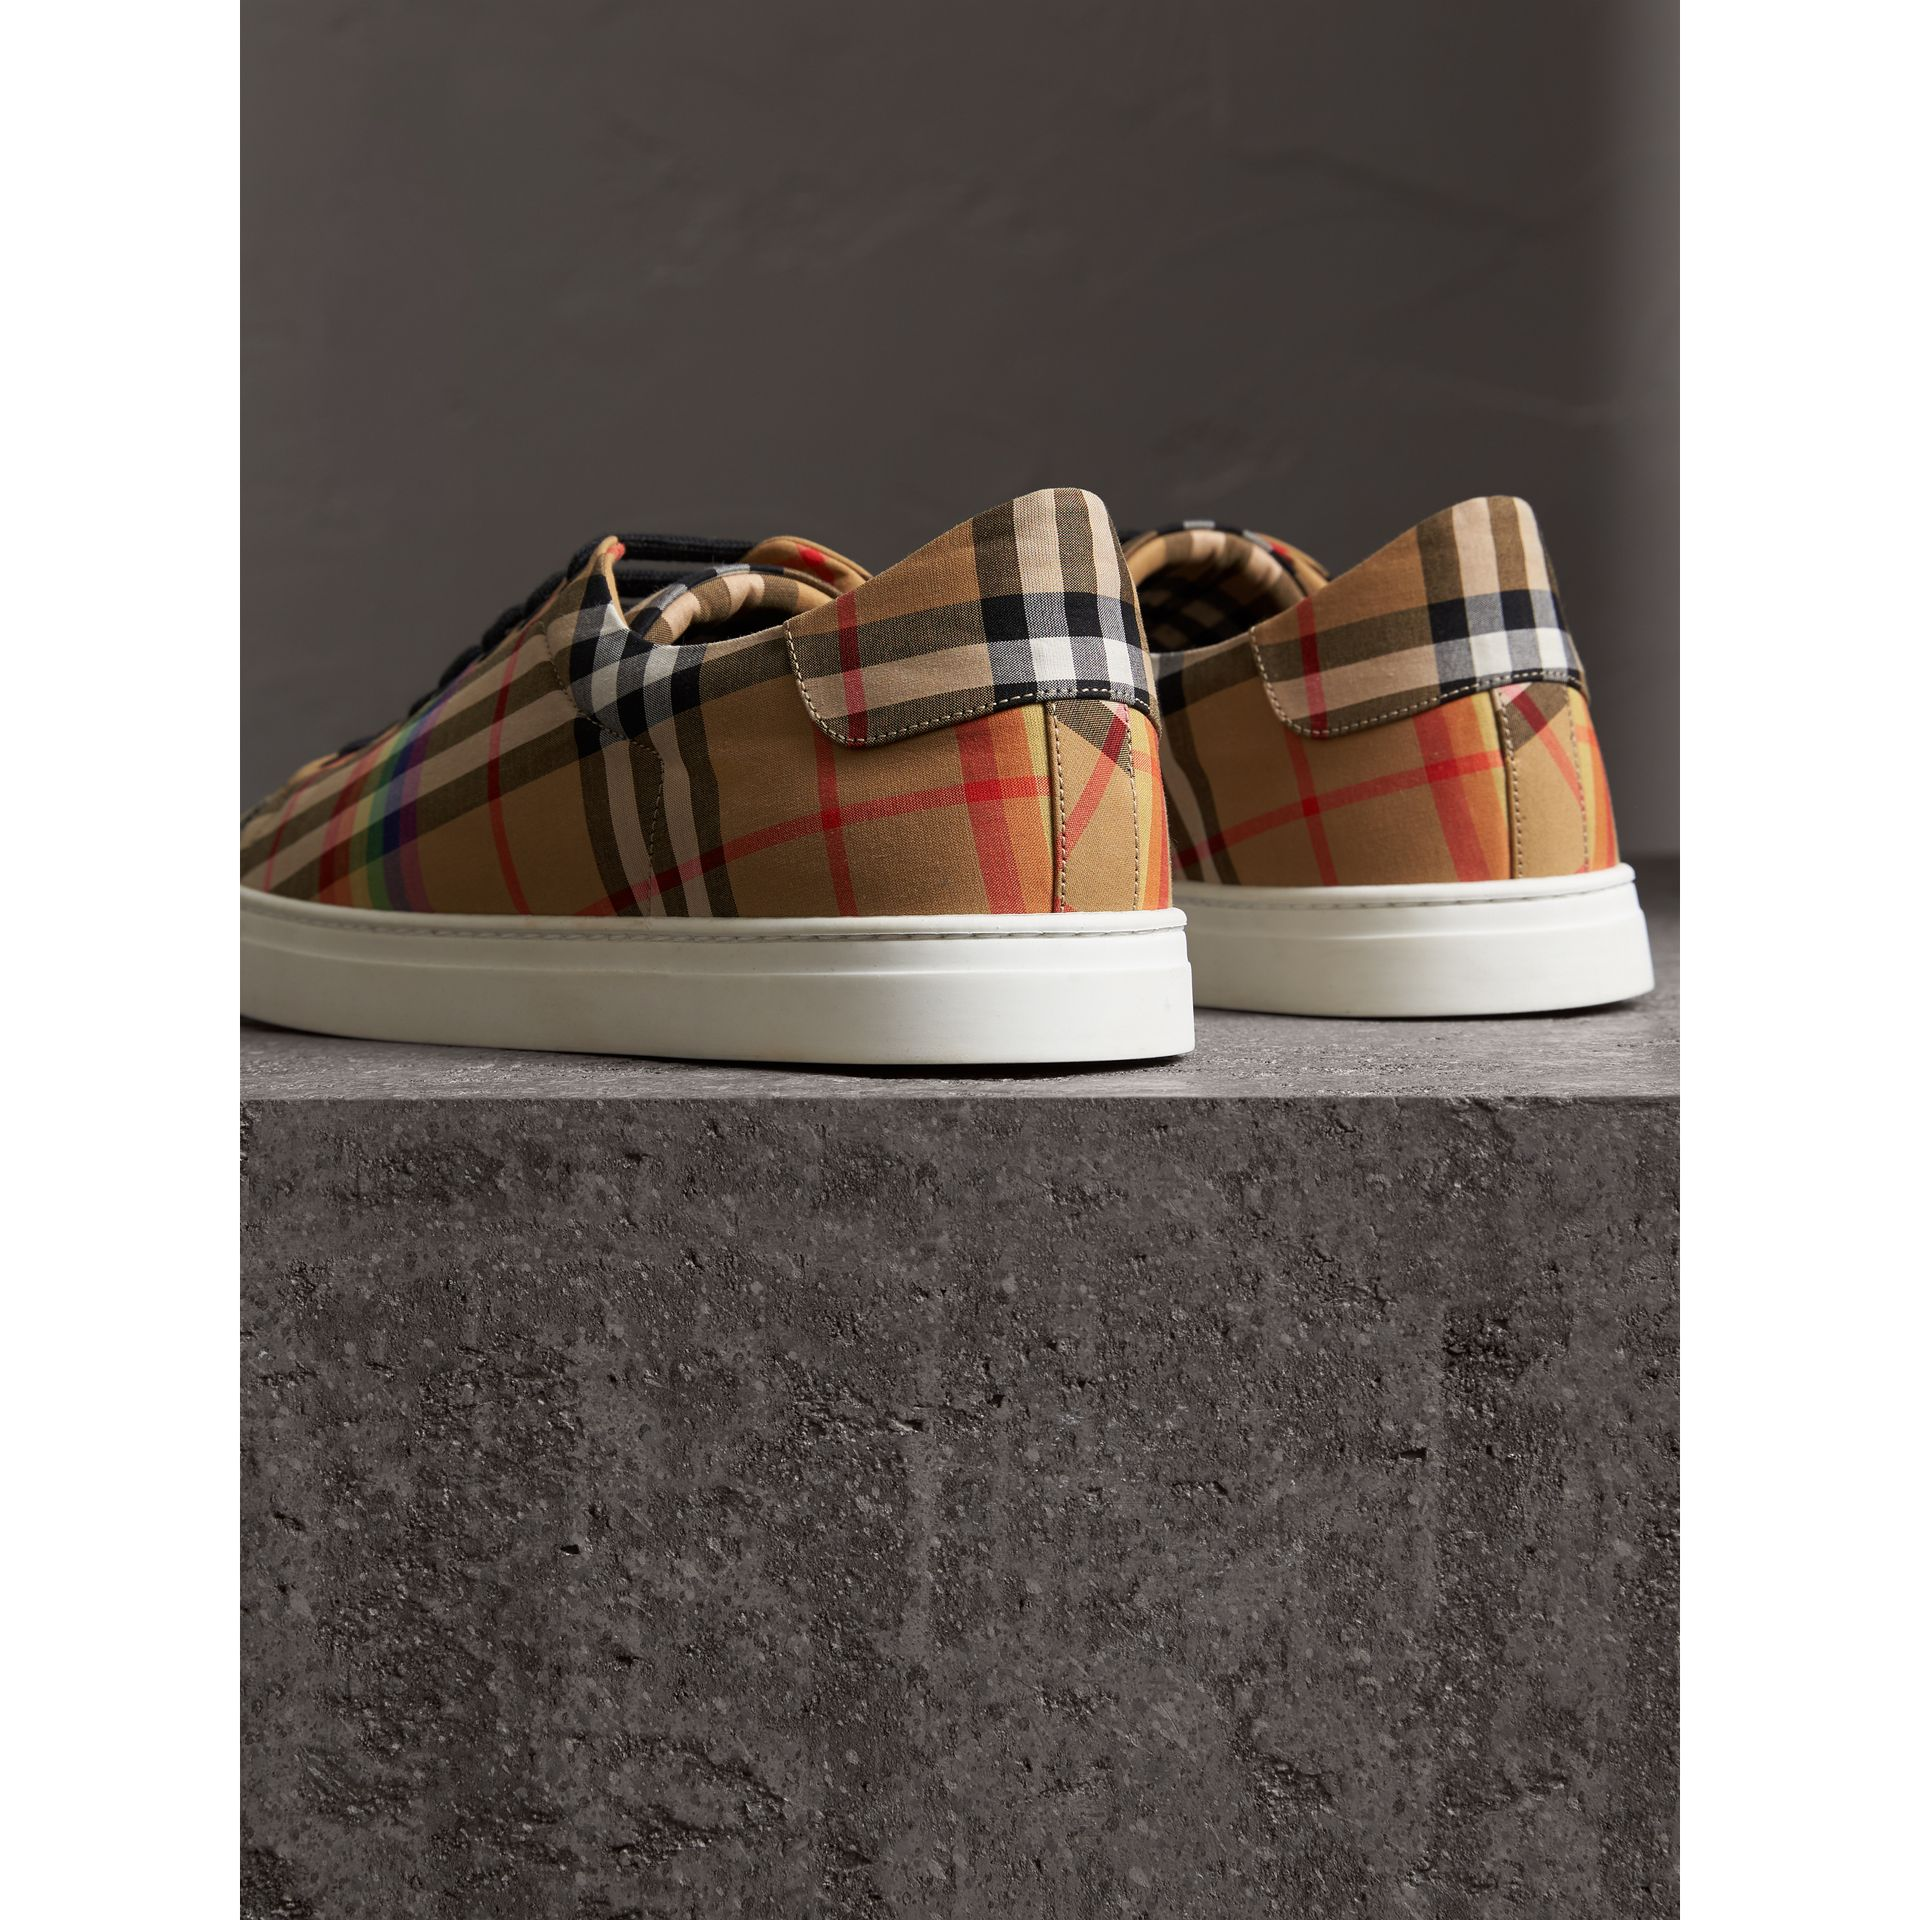 Sneakers à motif Rainbow Vintage check (Jaune Antique) - Homme | Burberry - photo de la galerie 3